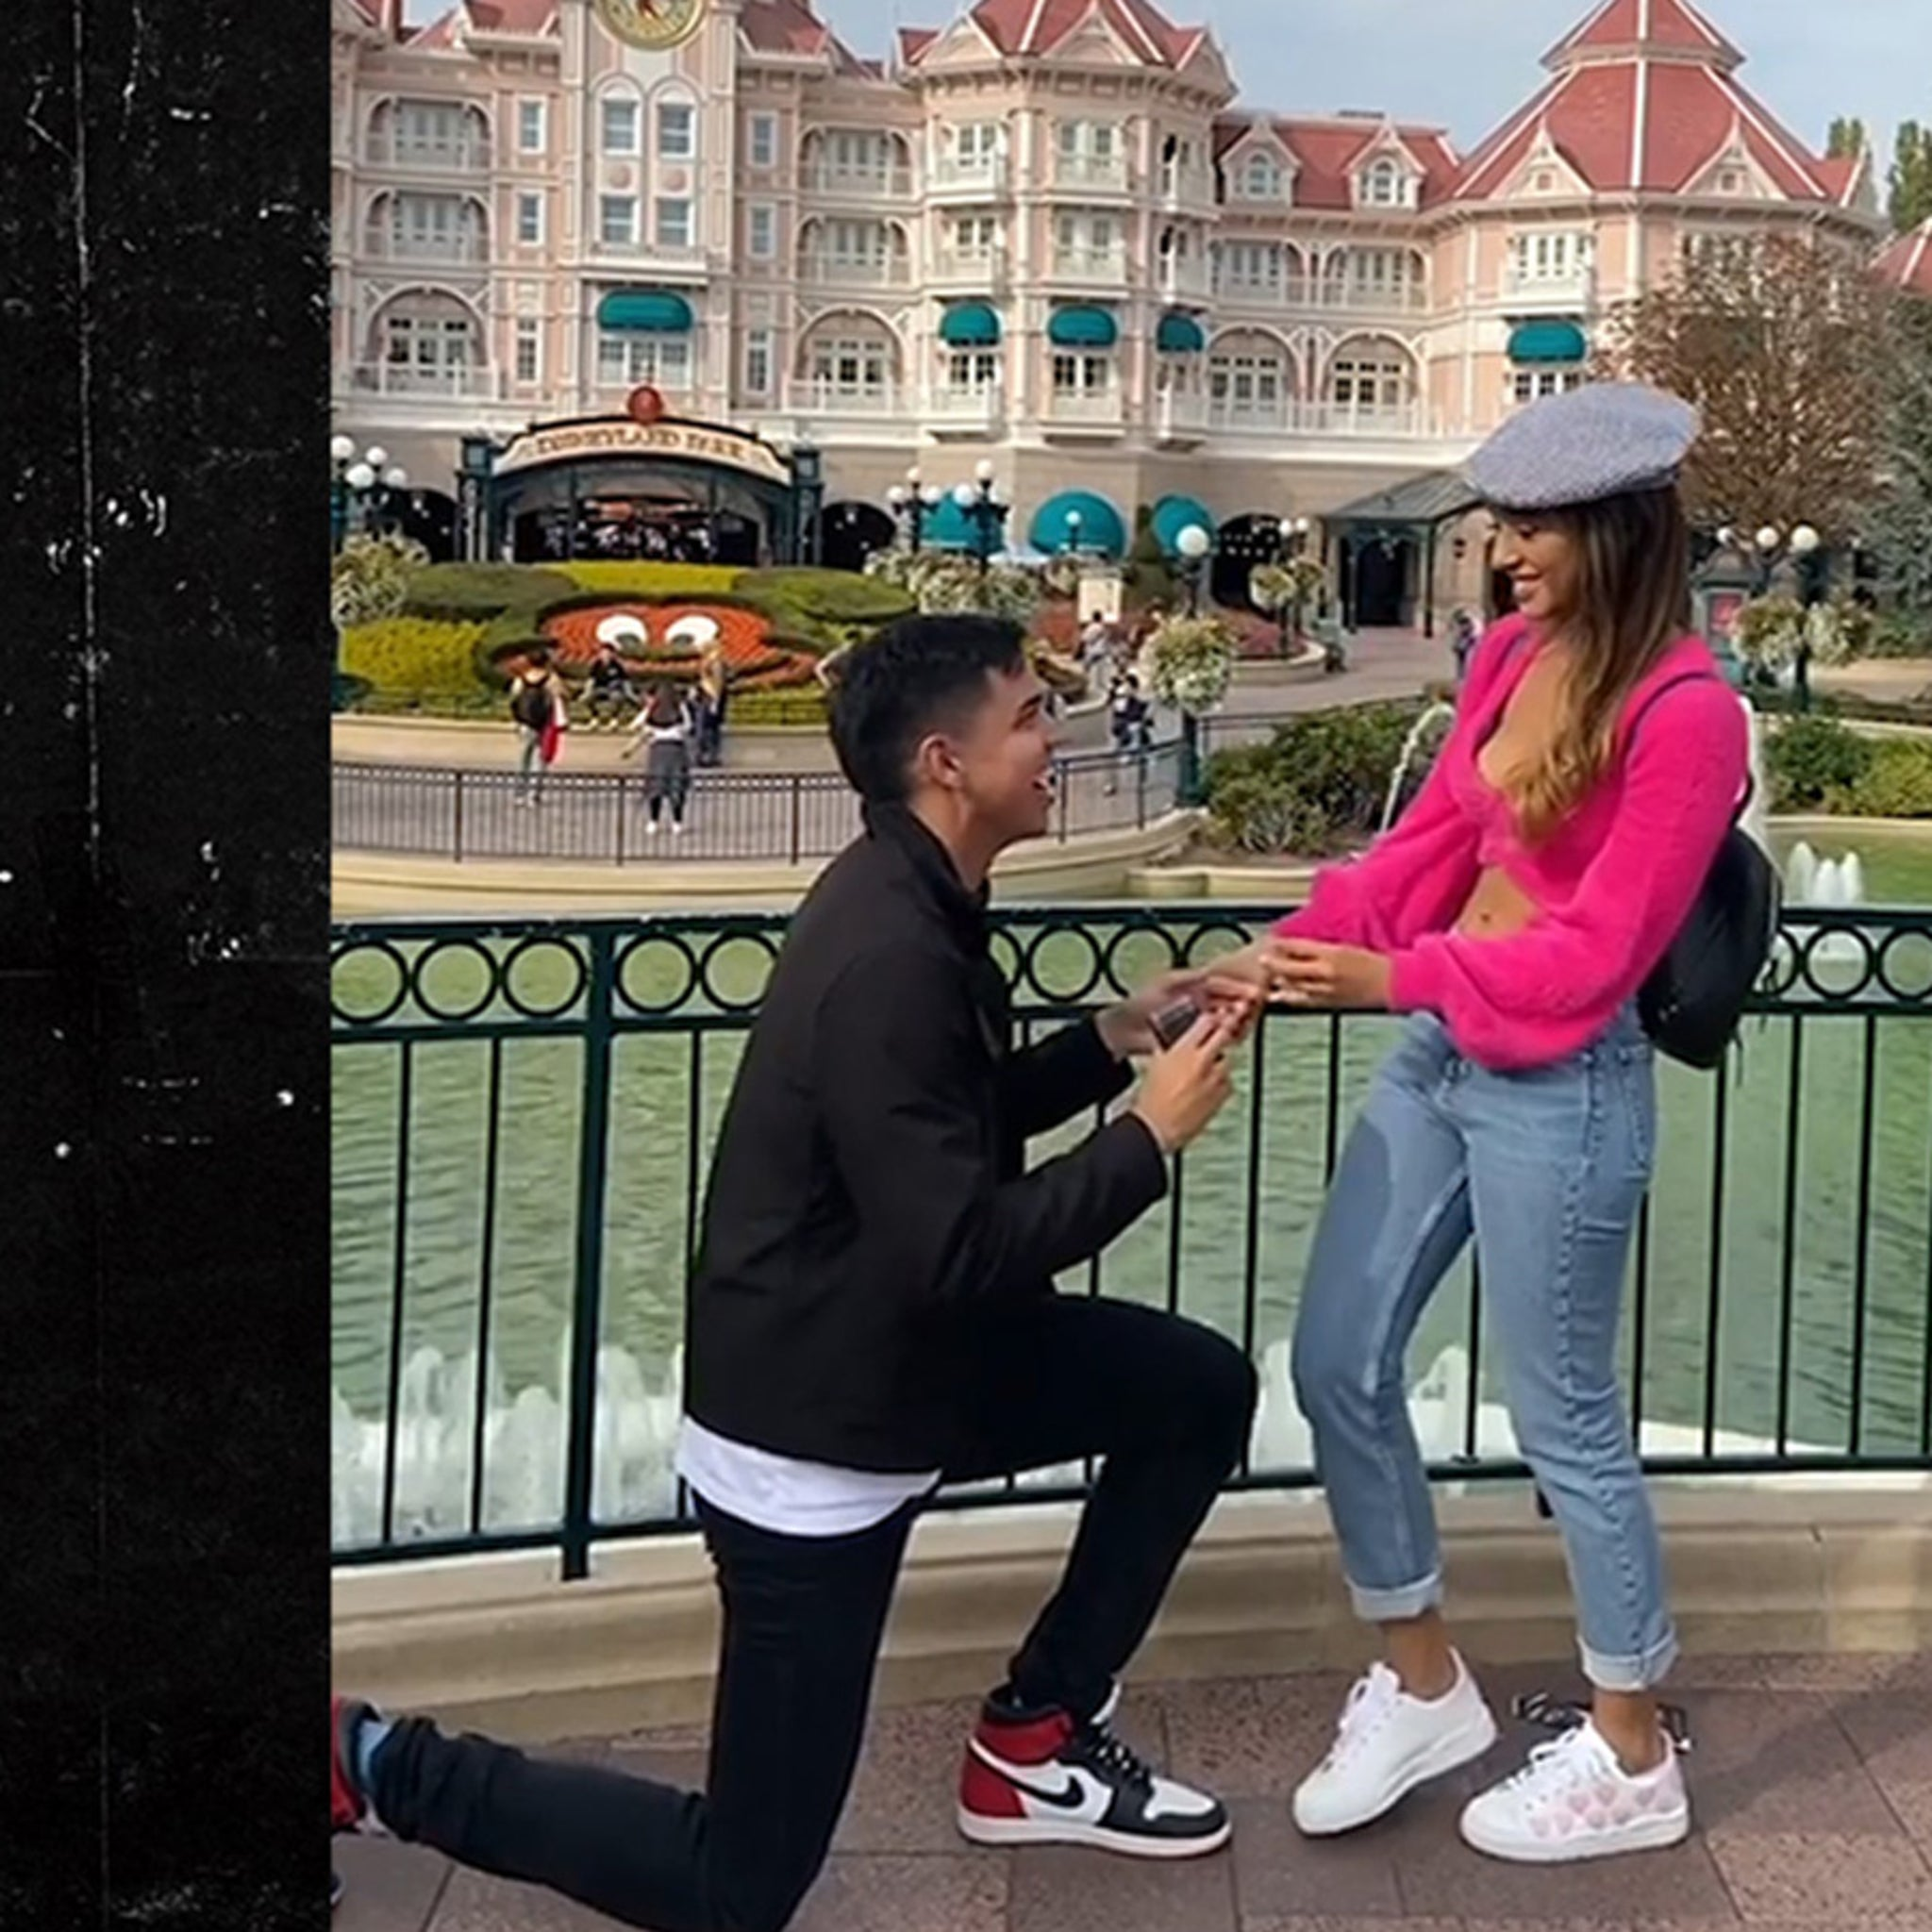 SF Giants Rookie Mauricio Dubon Proposes To Smokin' Hot GF At Disneyland Paris